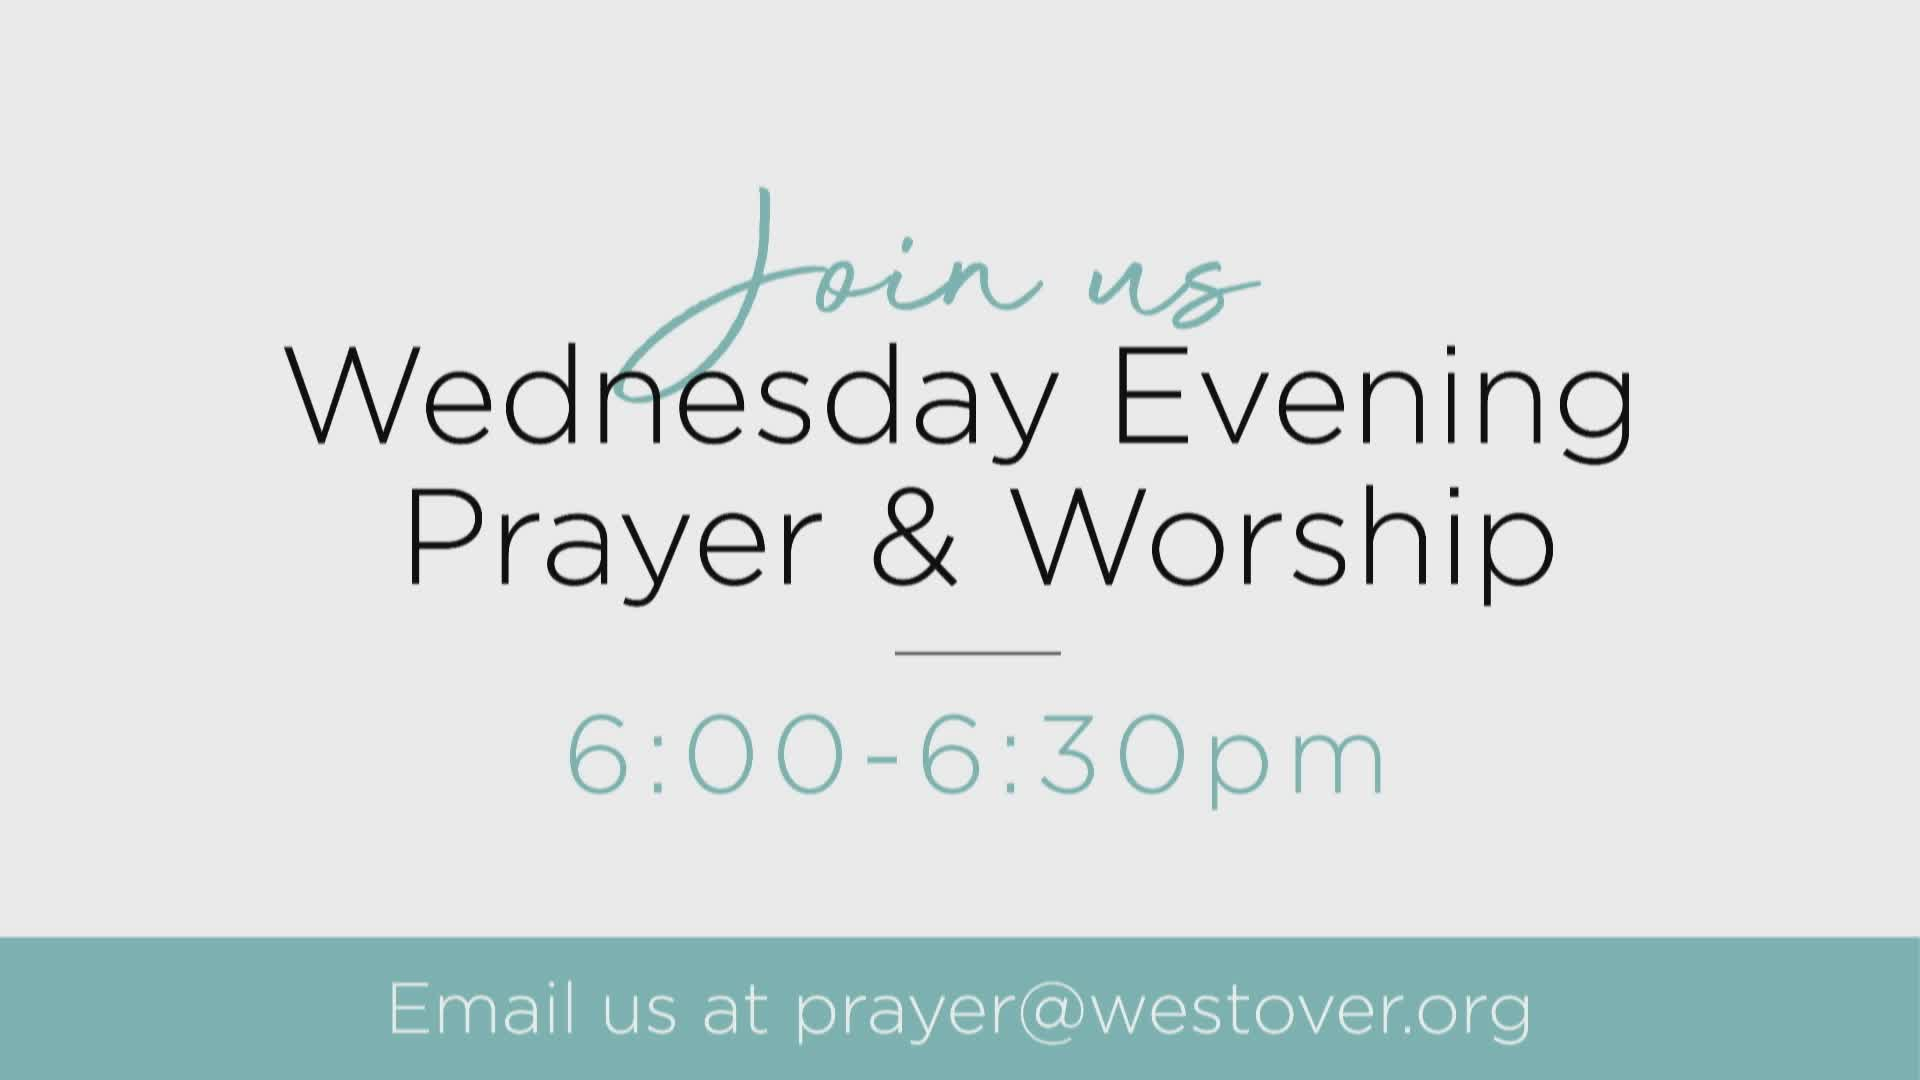 Wednesday Evening Prayer & Worship Service